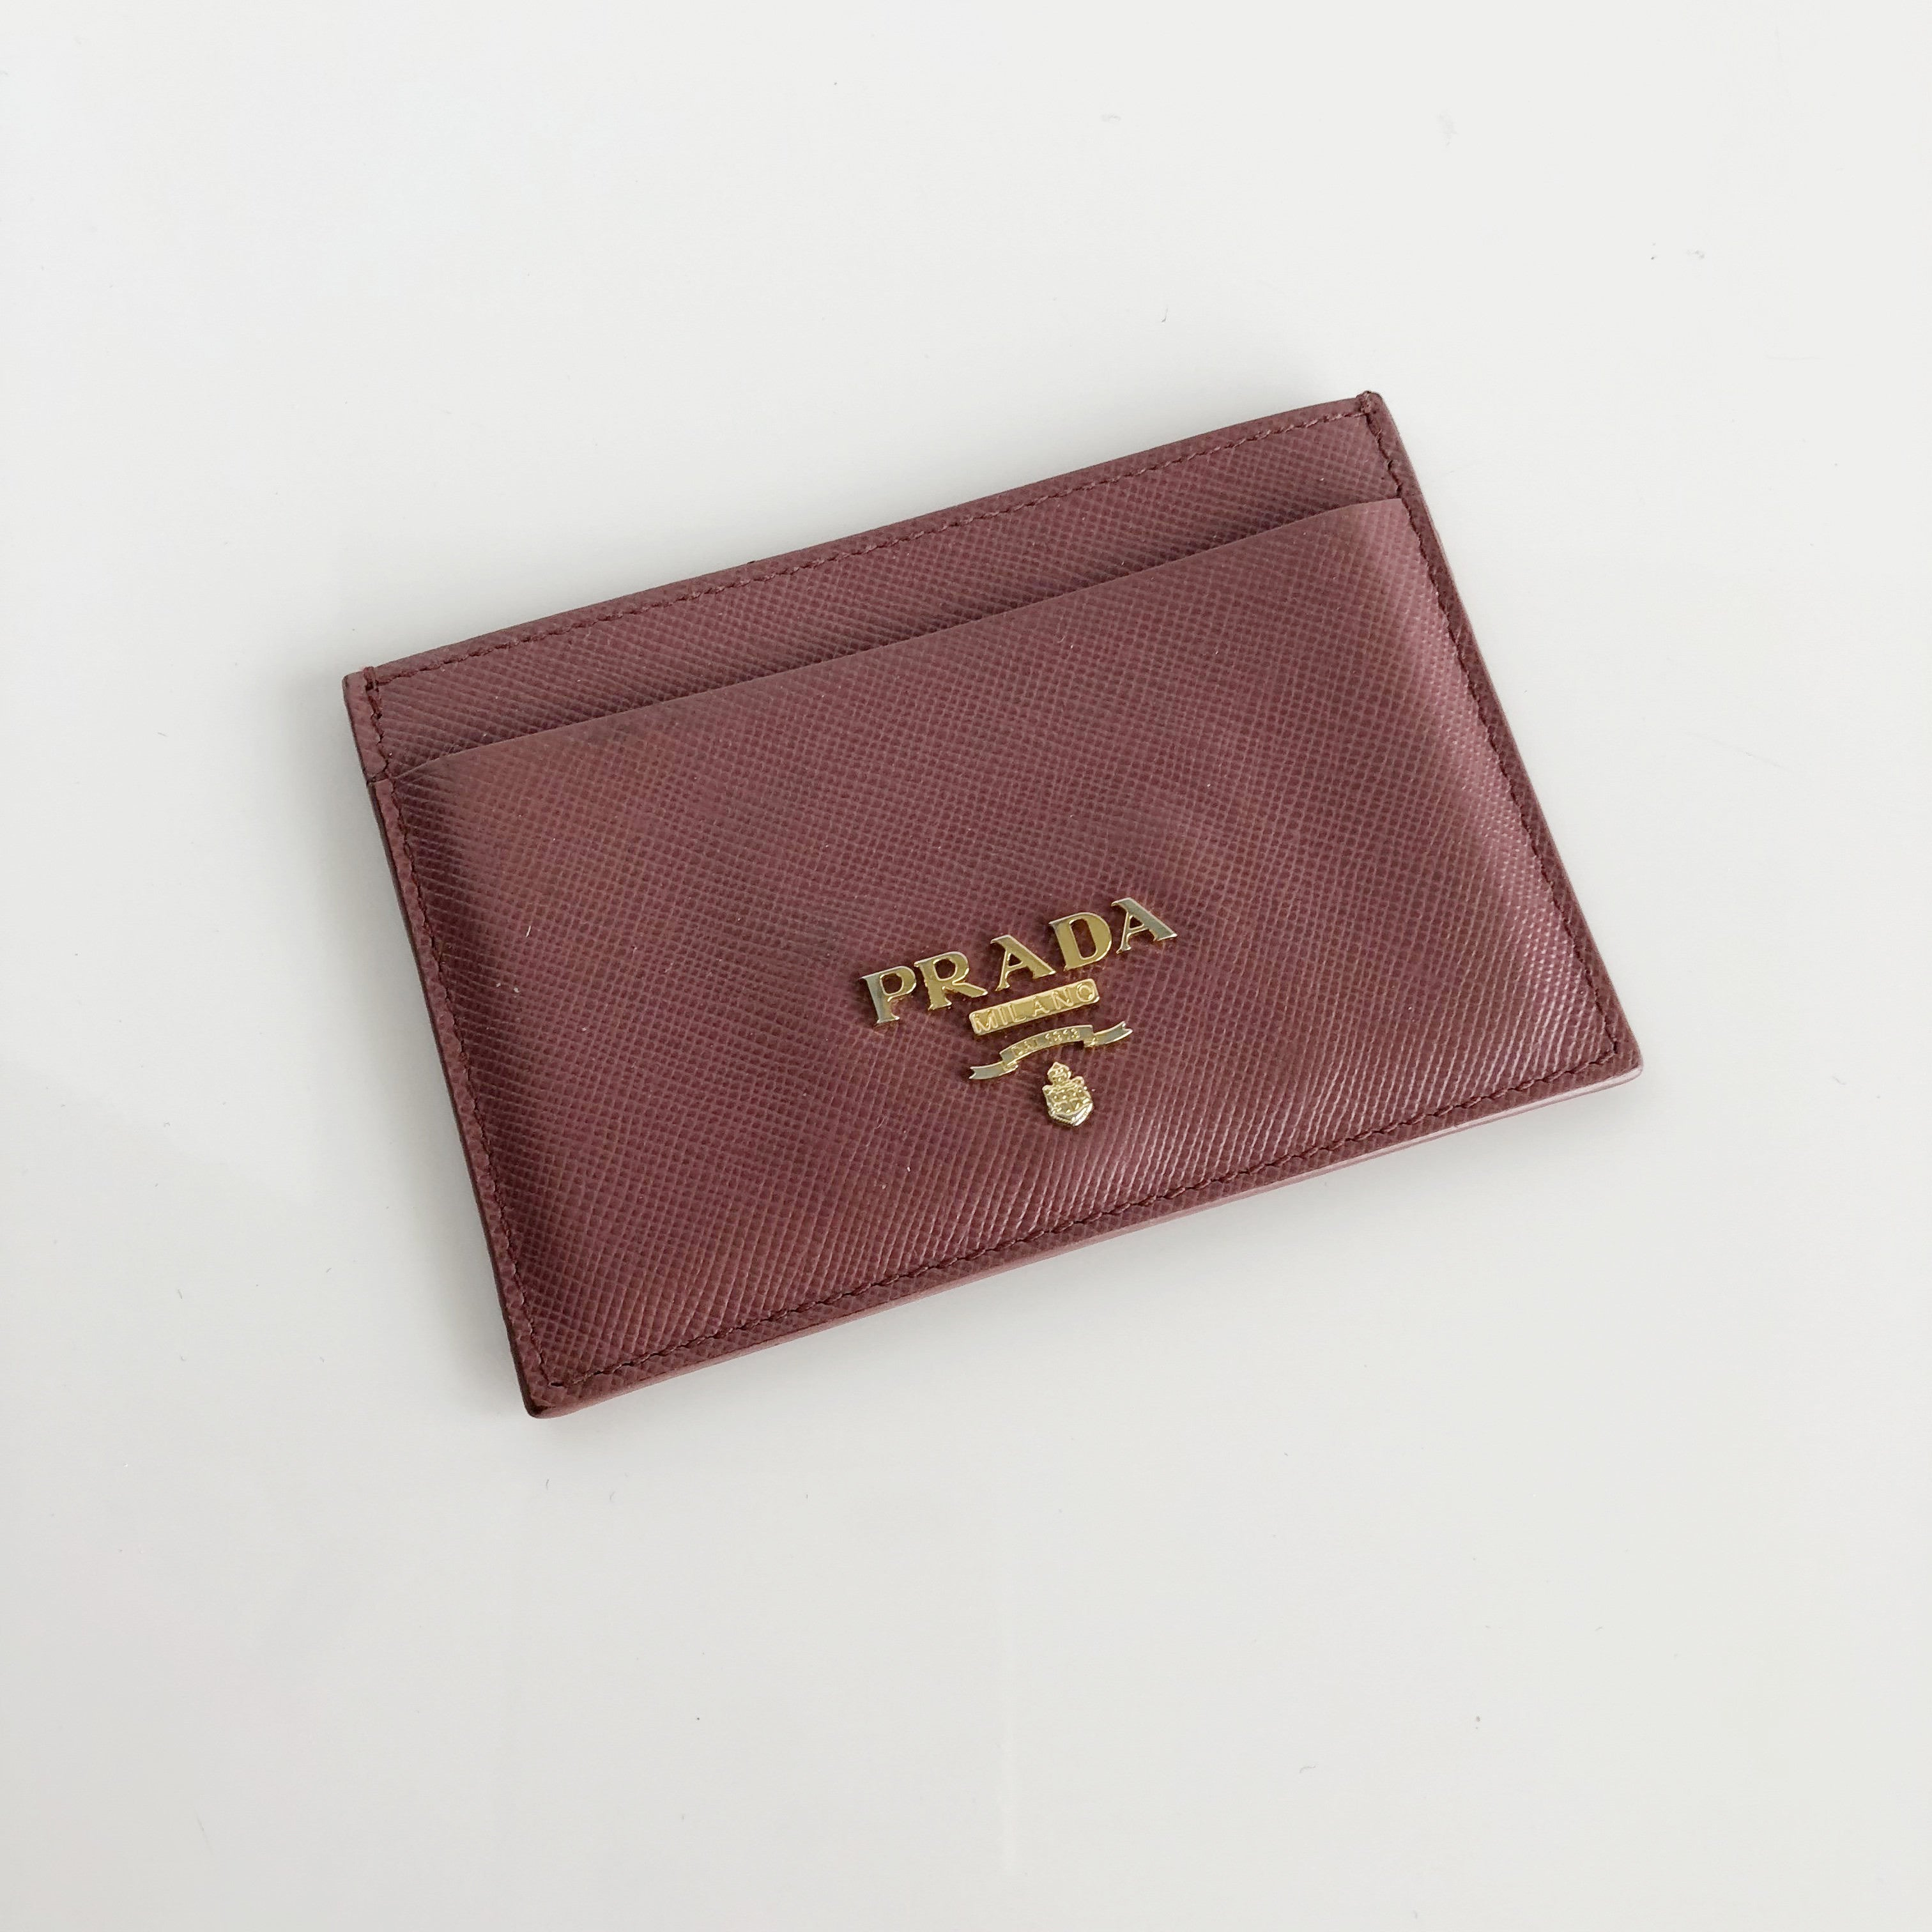 Authentic PRADA Card Holder